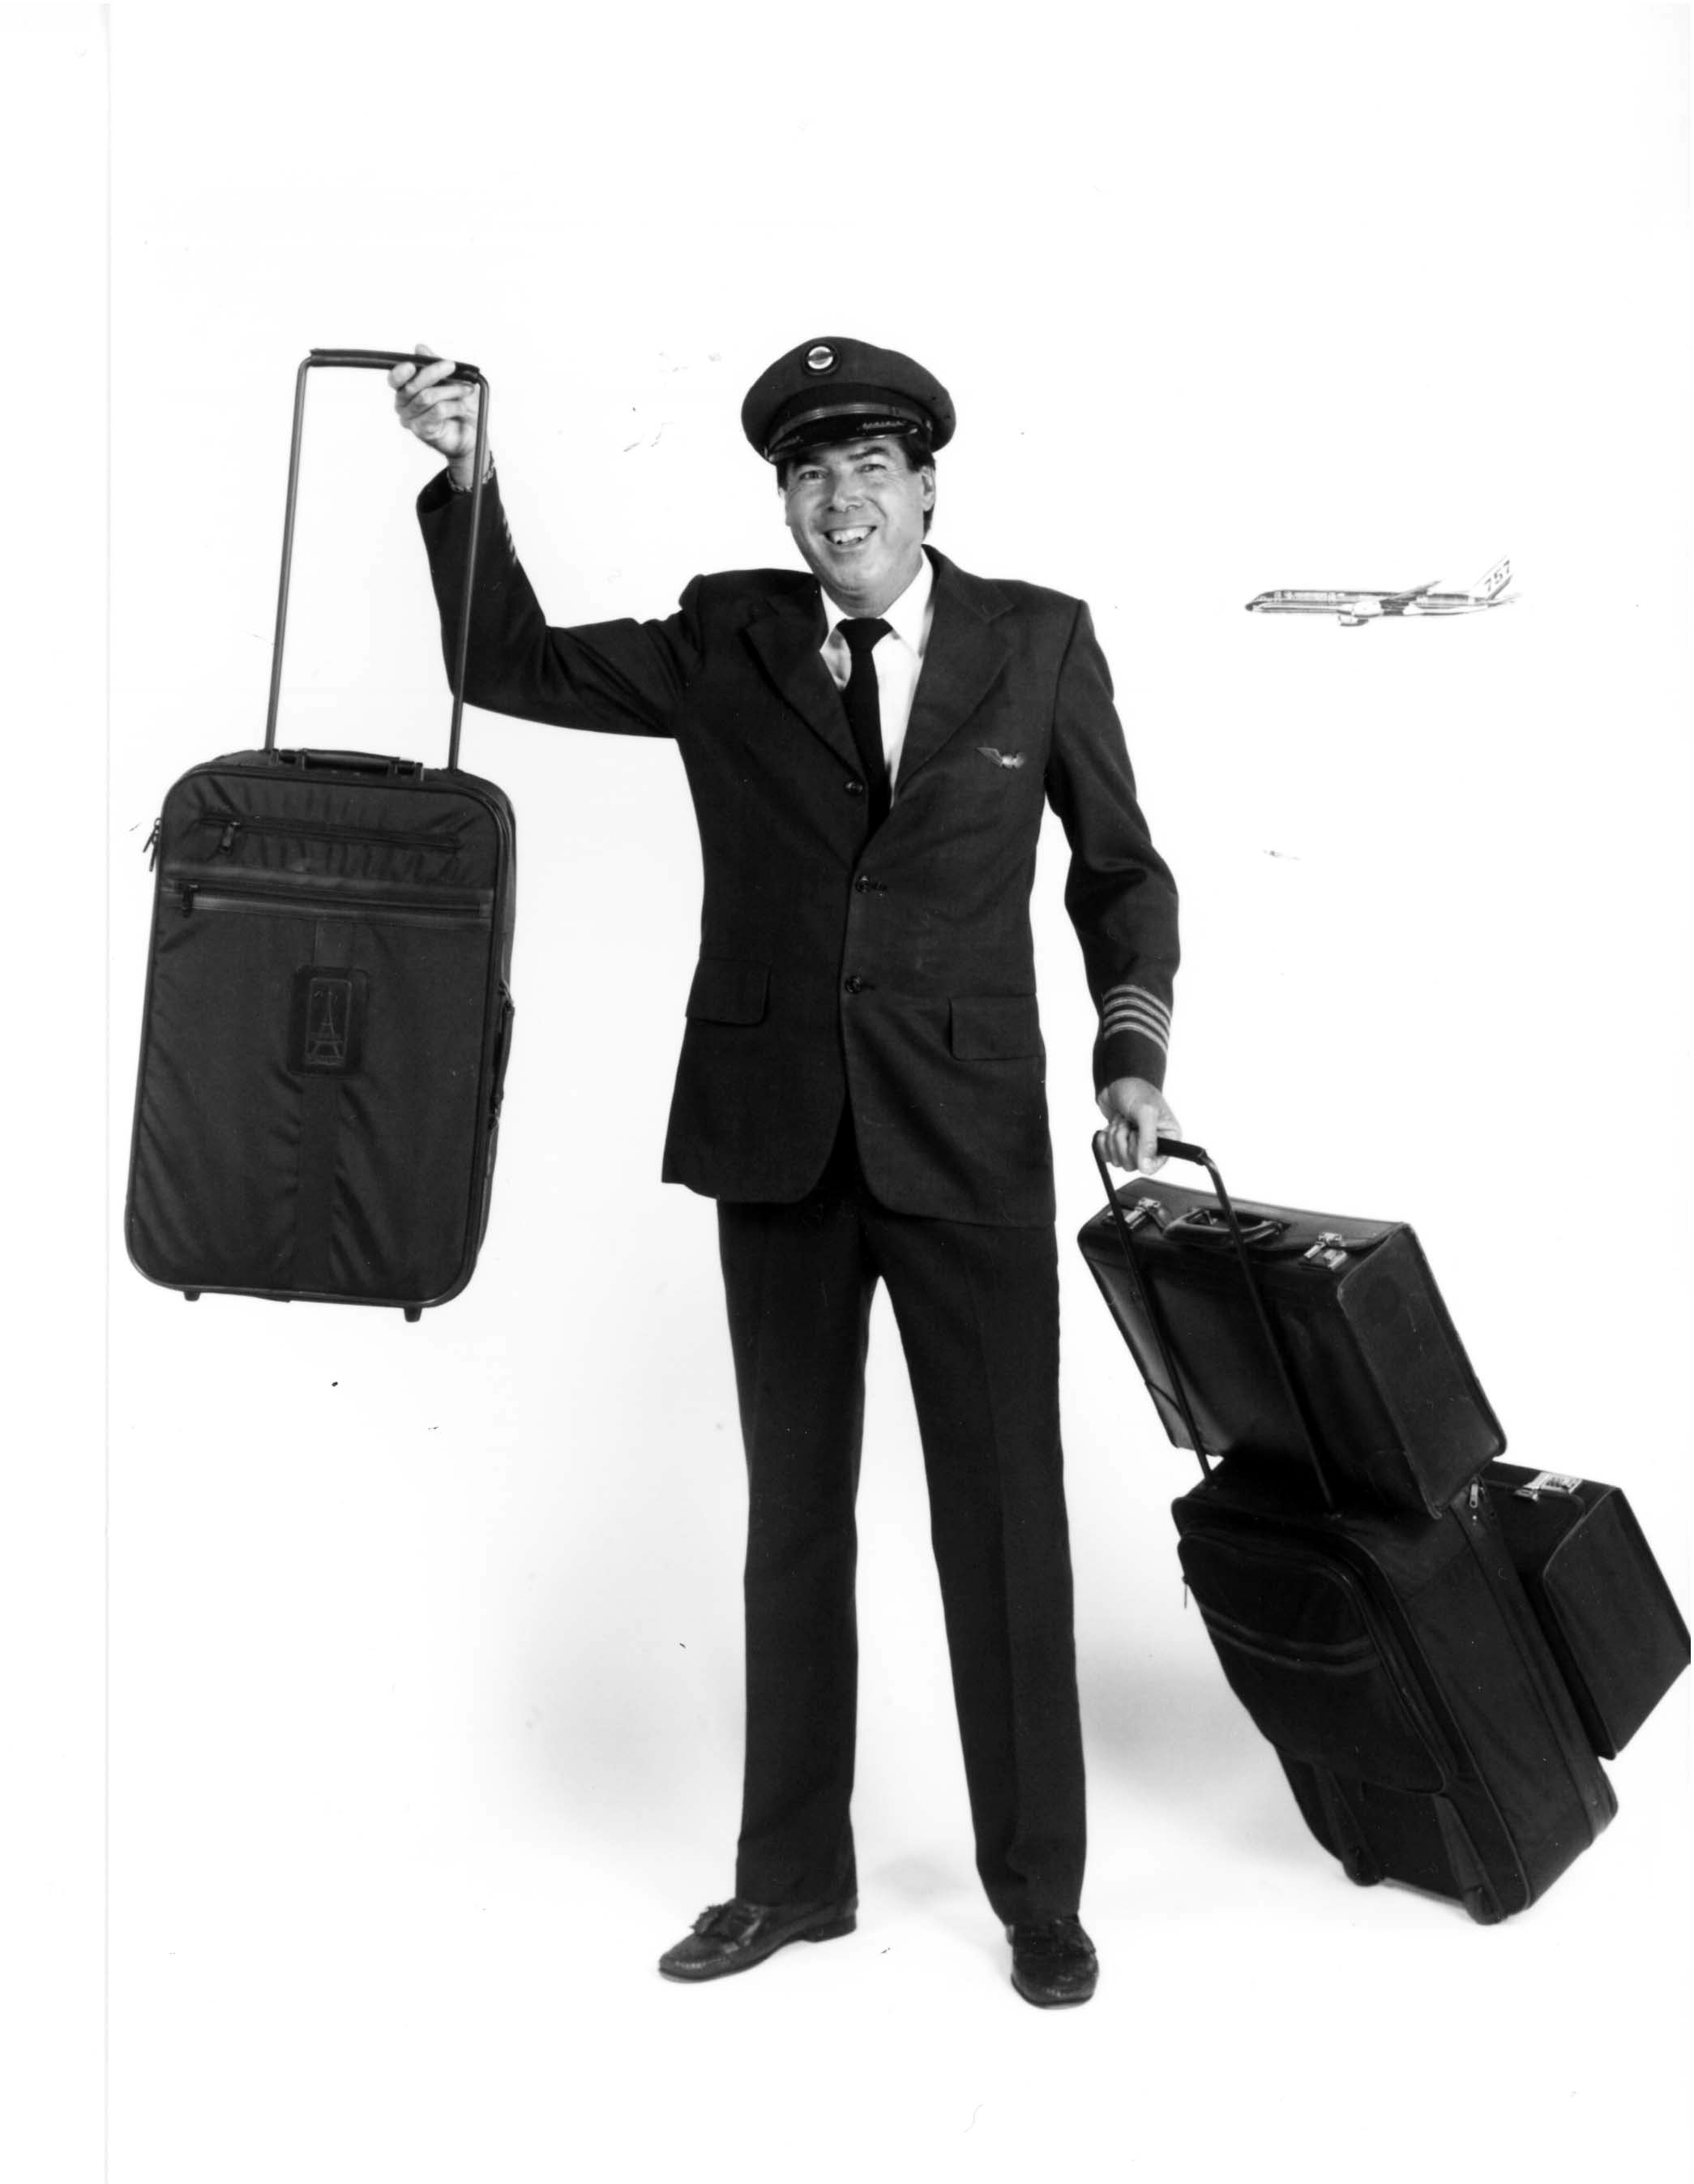 Robert Plath and Rollaboard Luggage